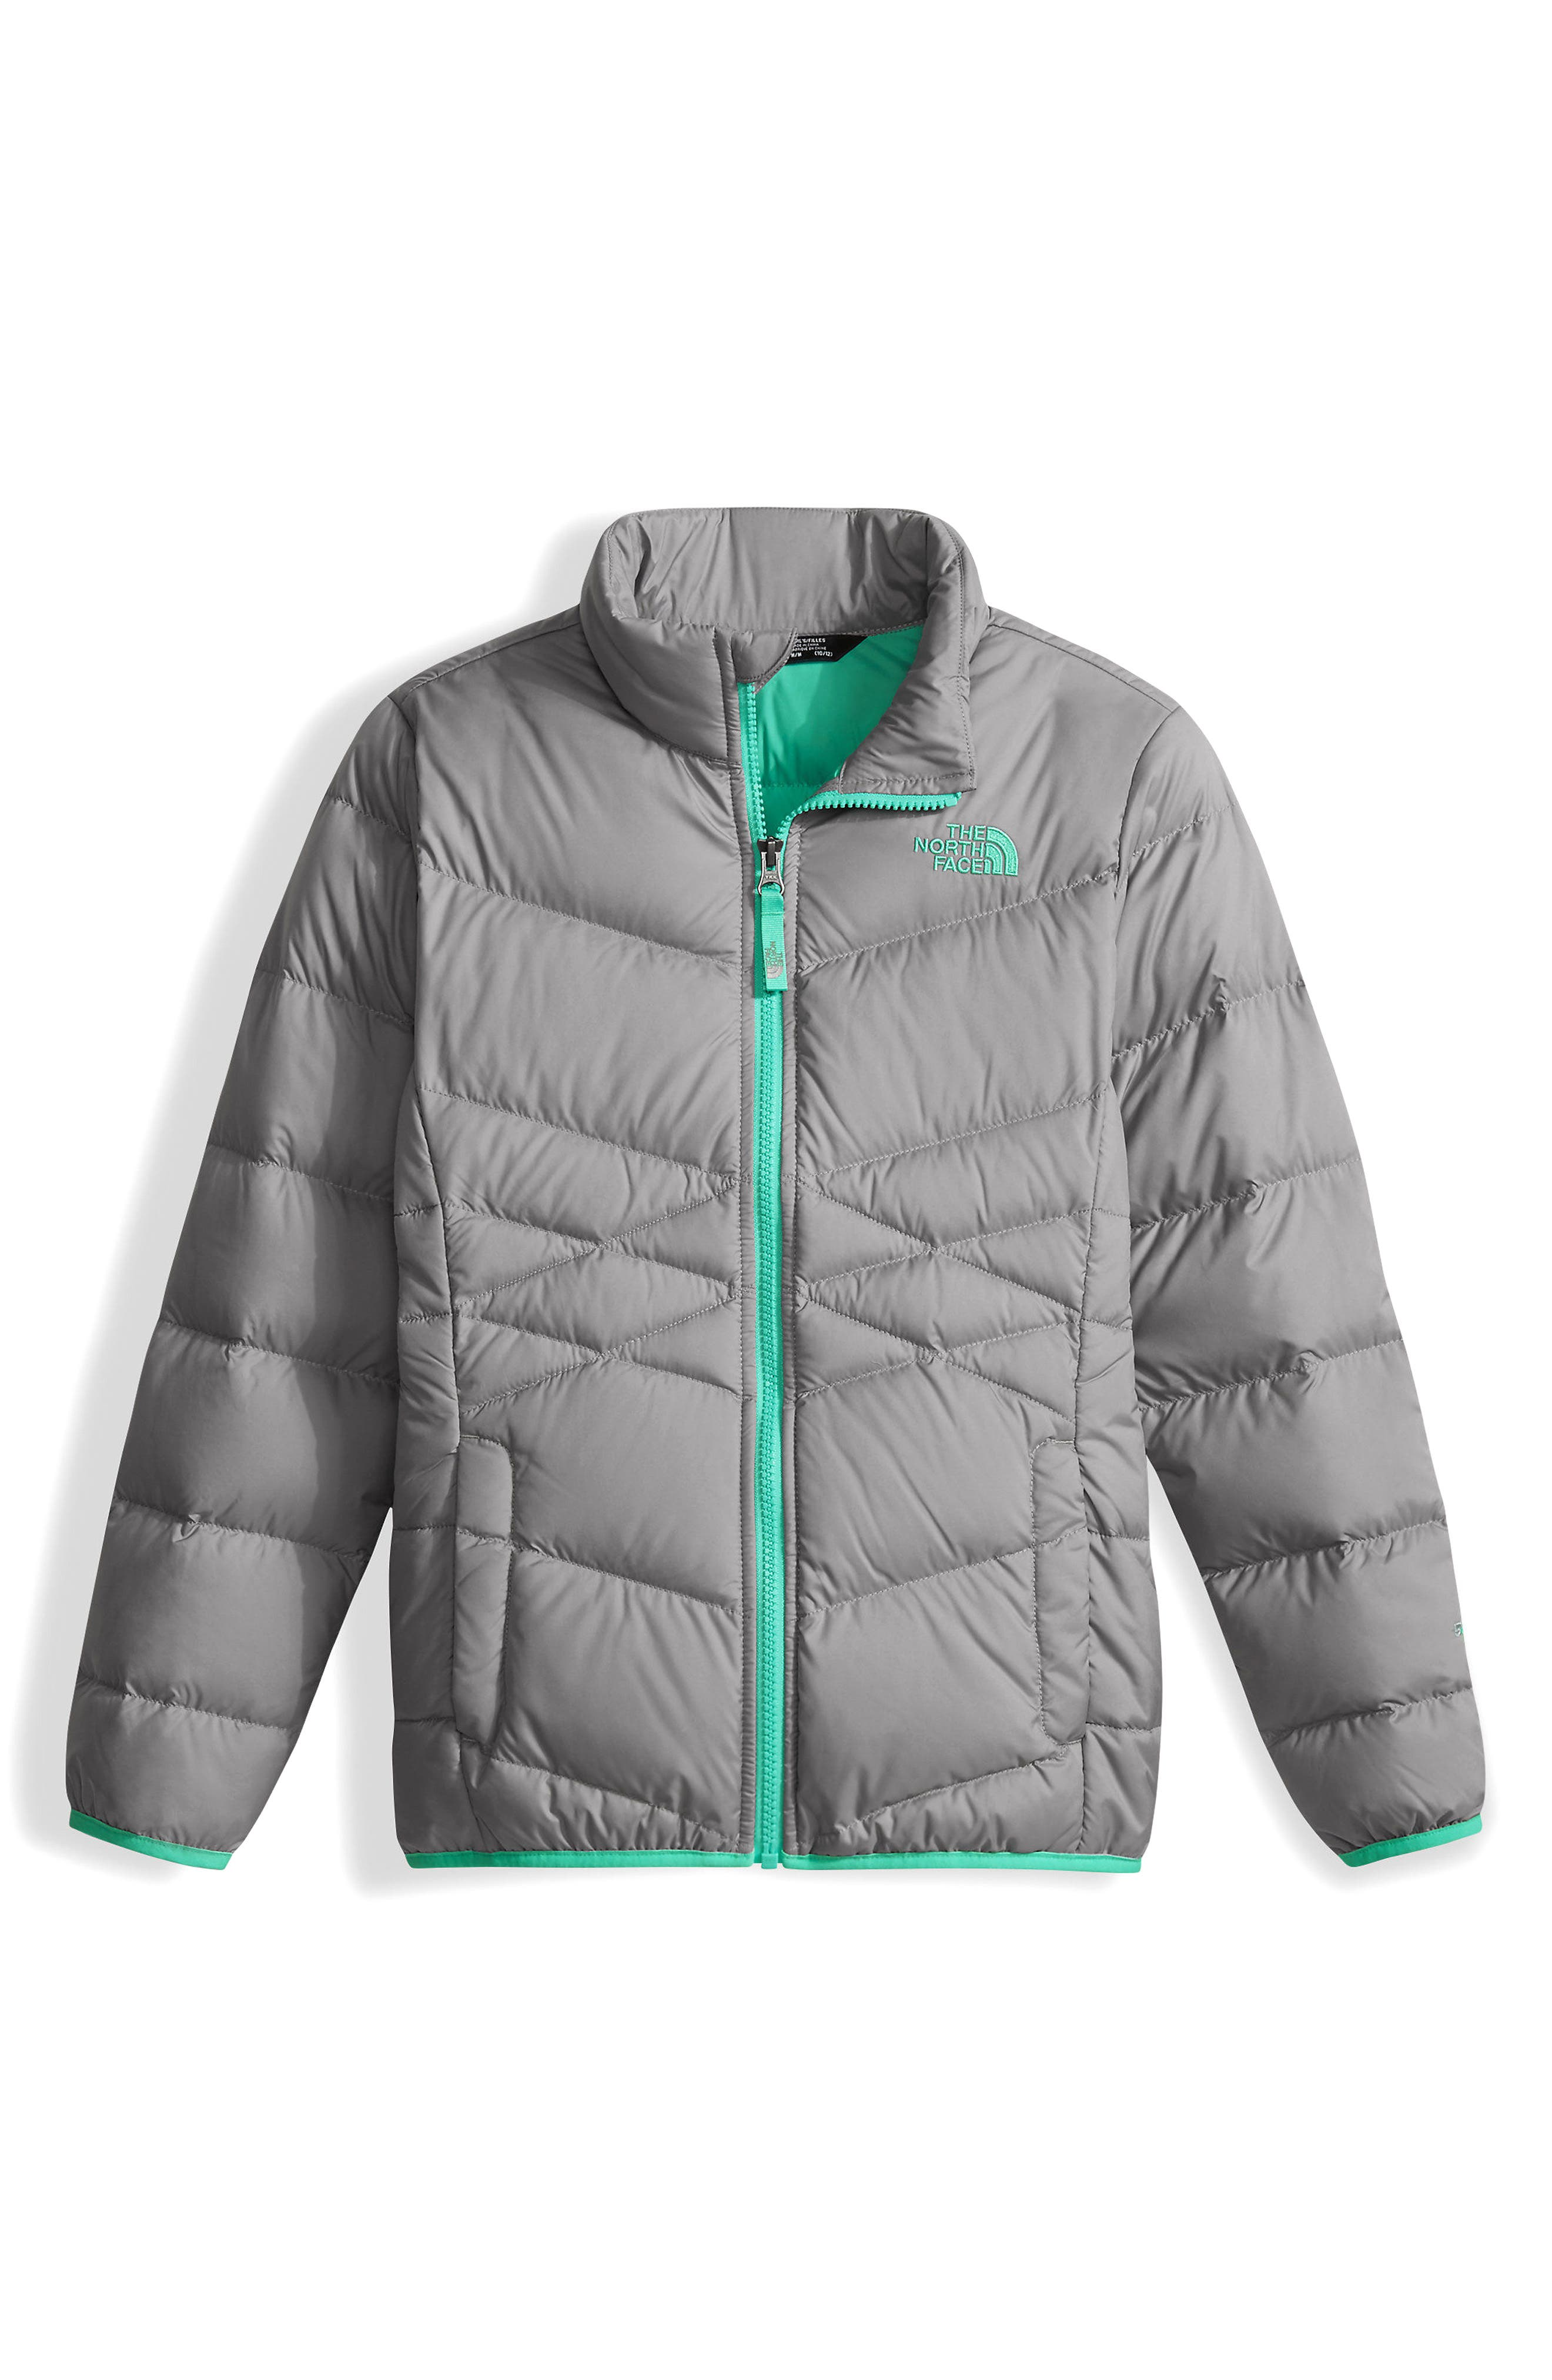 THE NORTH FACE Andes Water Repellent Down Jacket